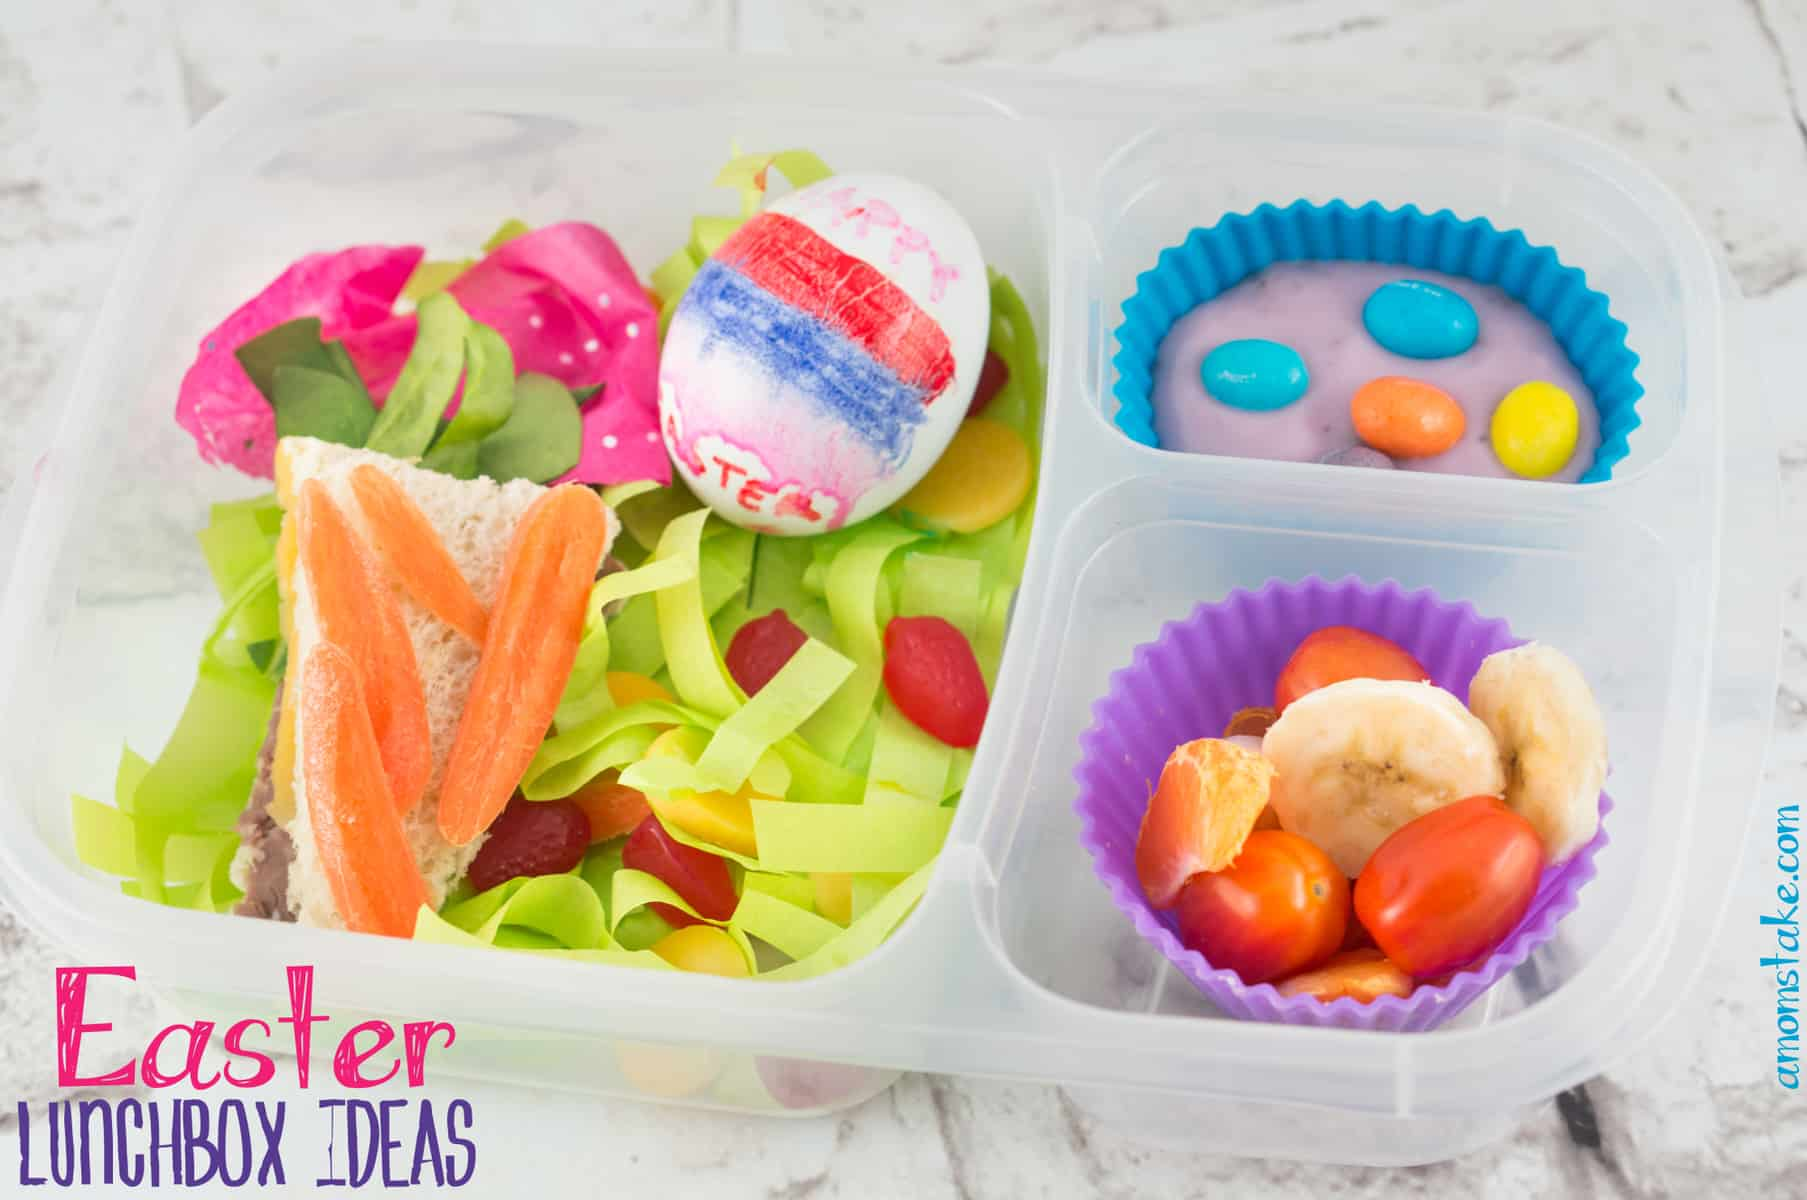 Carrot sandwich and Easter salad with deocrated hard boiled egg